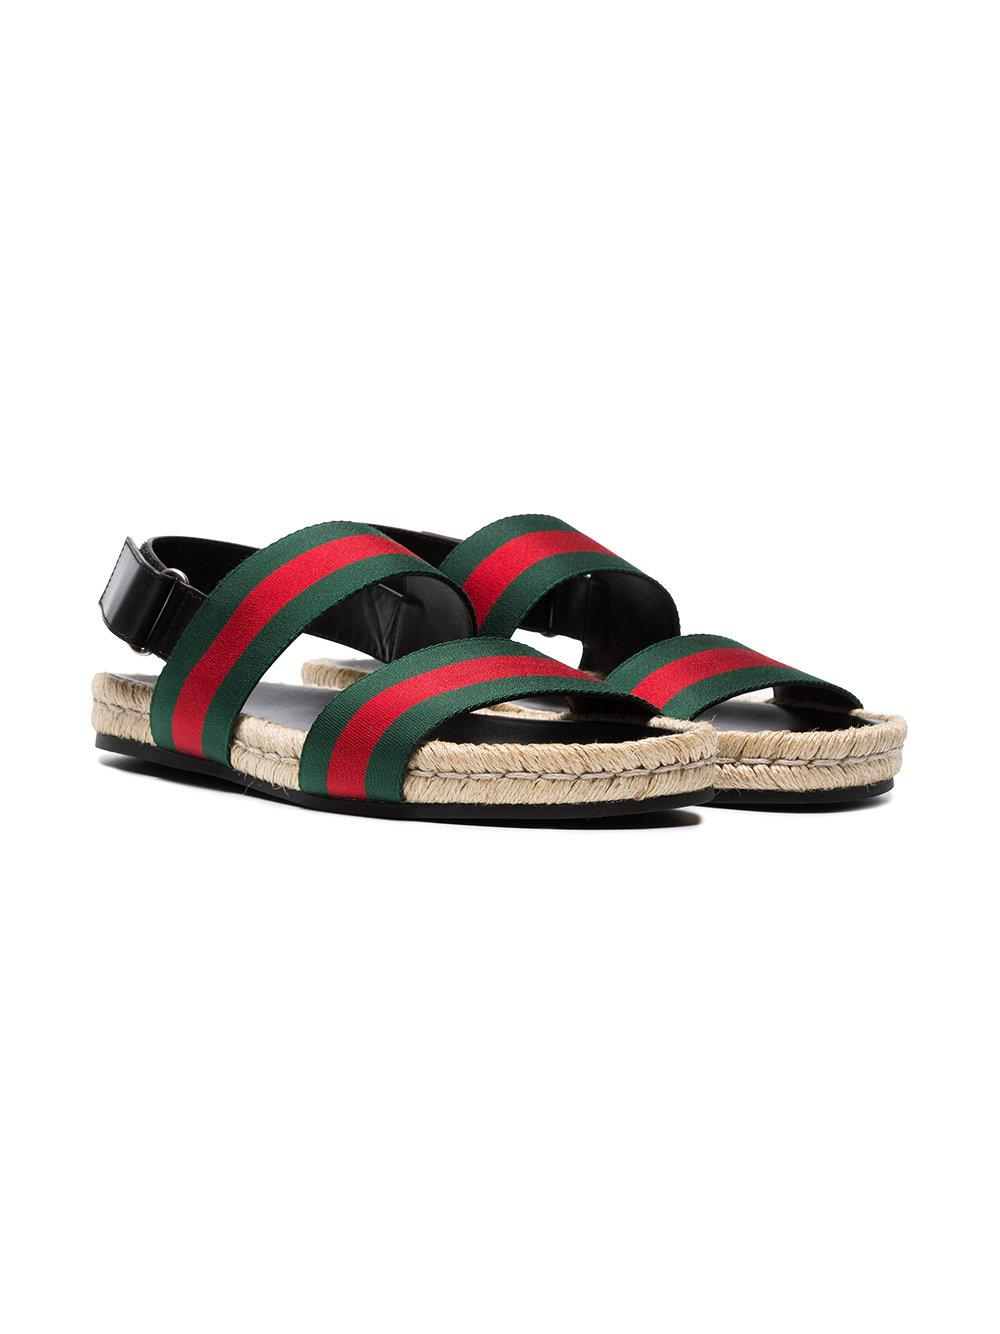 b5deeba79 Gucci - Green And Red Web Sandals for Men - Lyst. View fullscreen